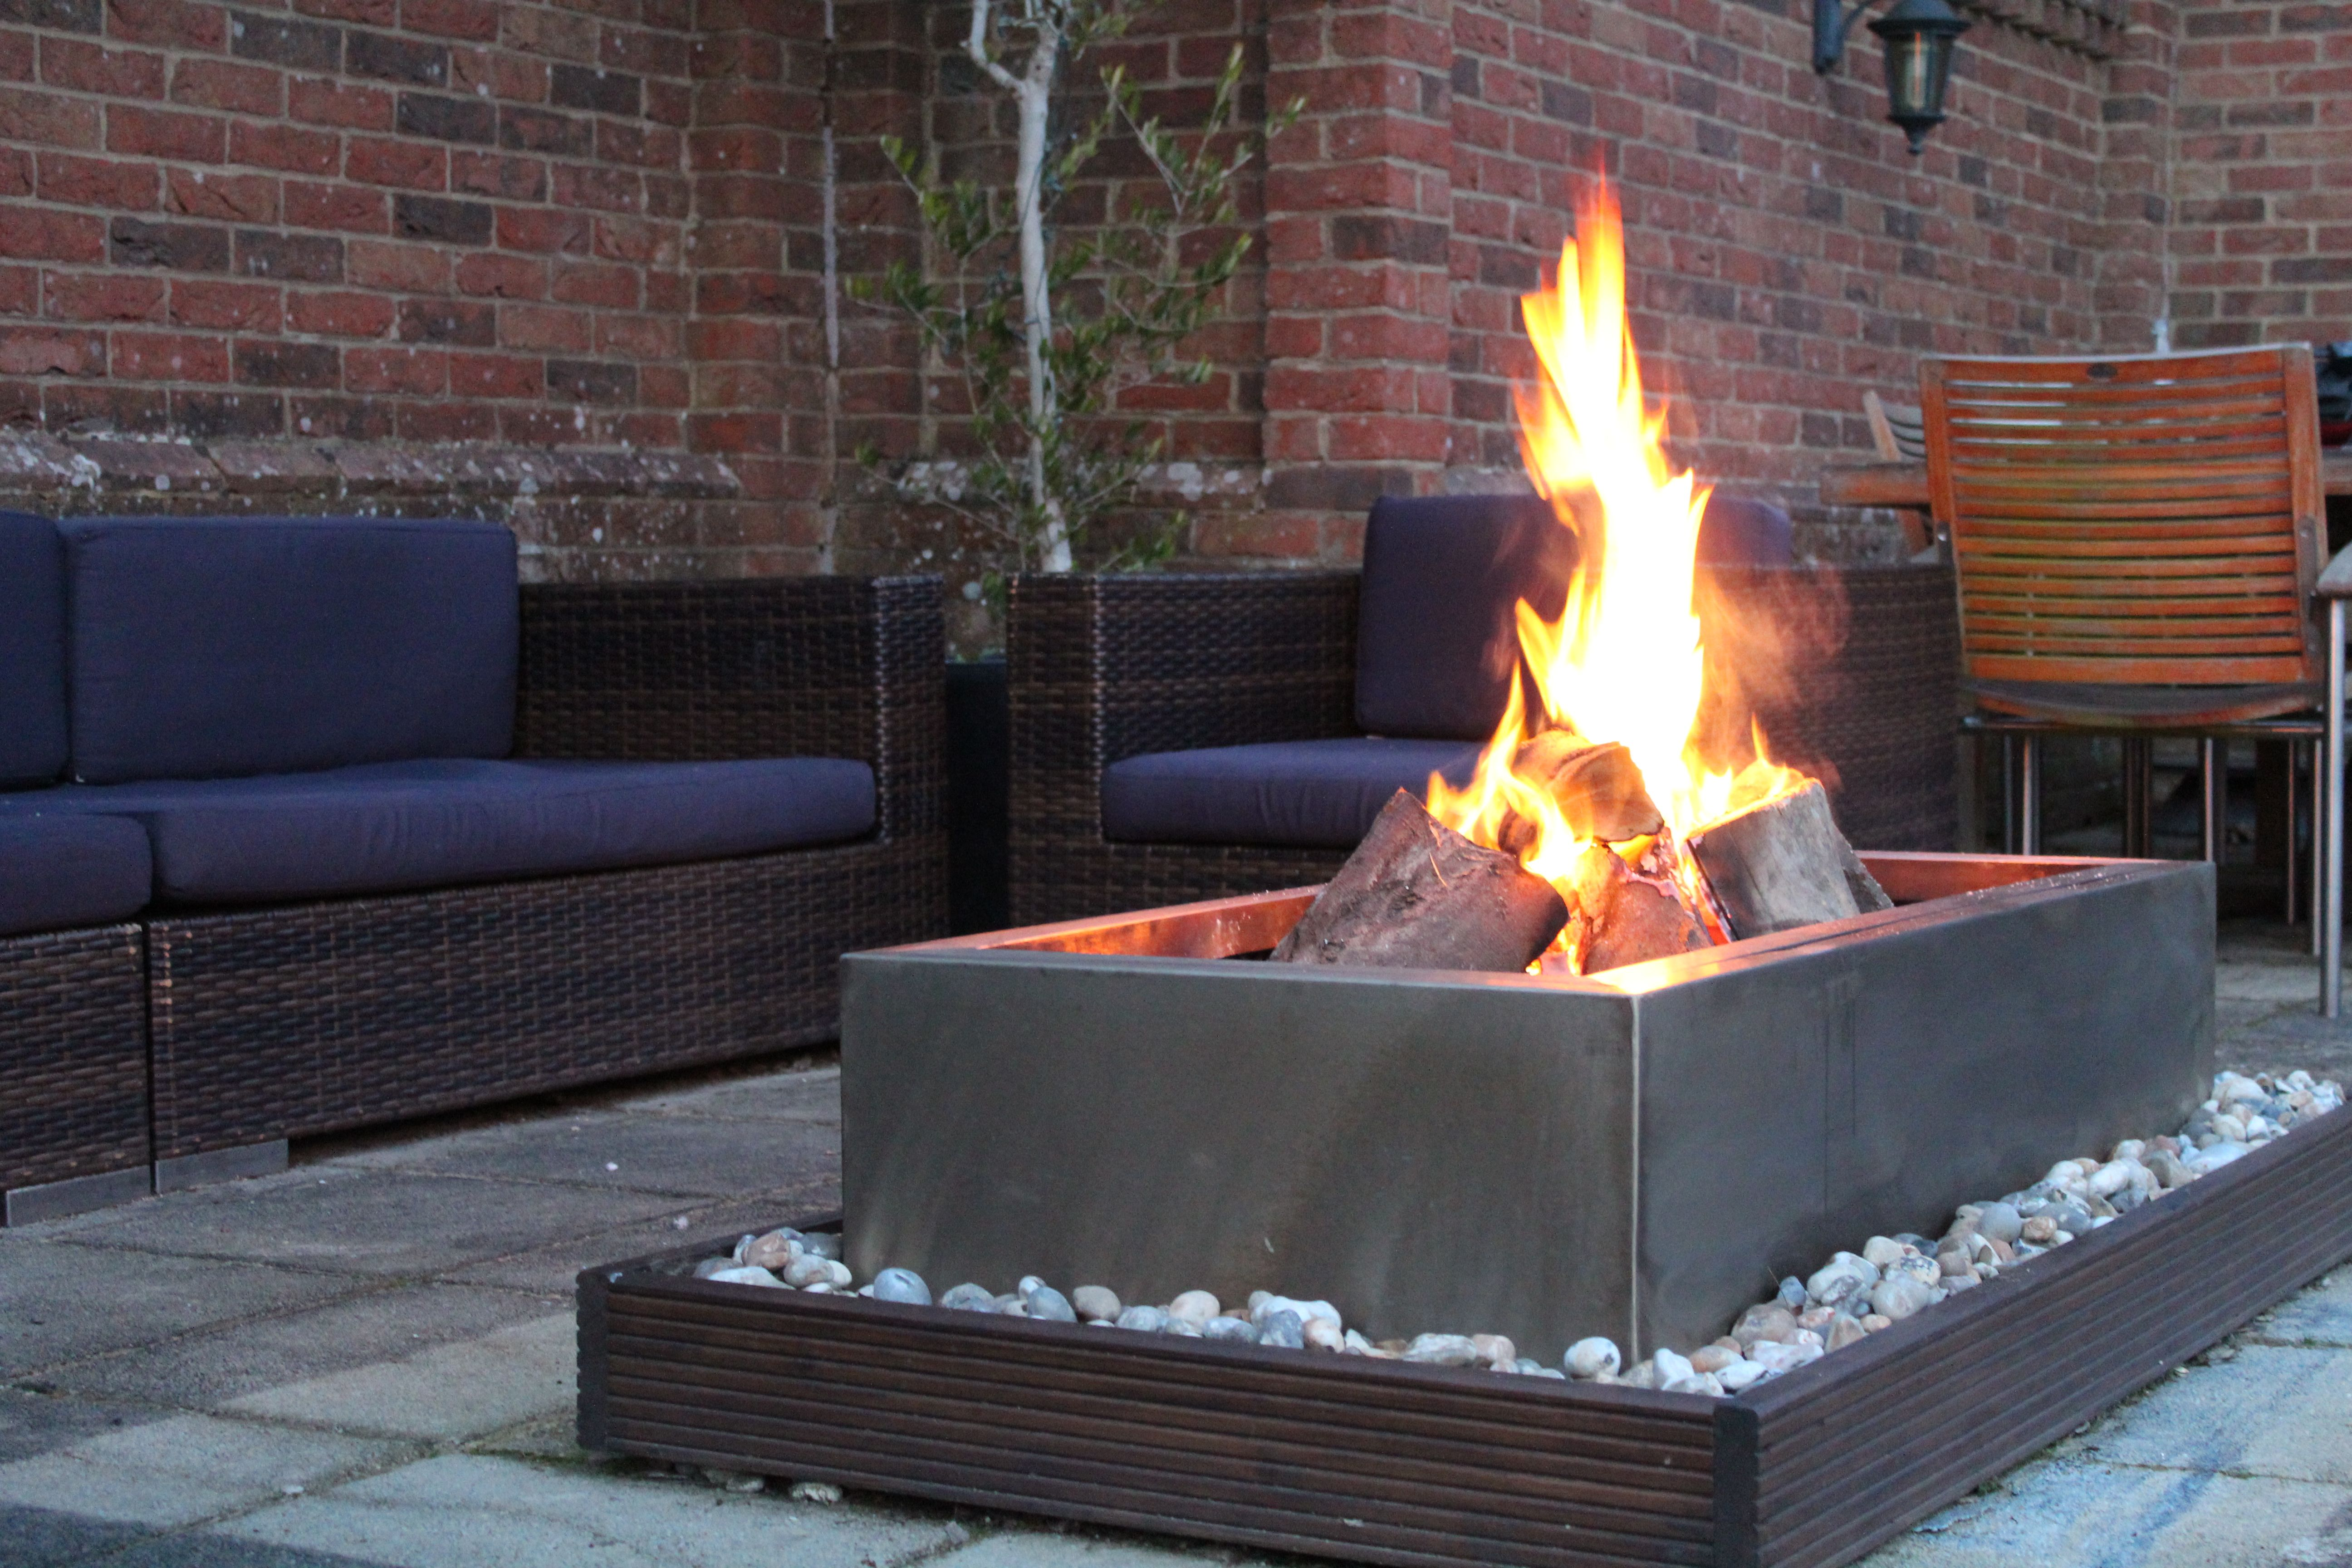 9c8b32fd1dae9f6eefc47c75e70b9b1a Top Result 50 Awesome Fire Pit Store Photography 2018 Hzt6